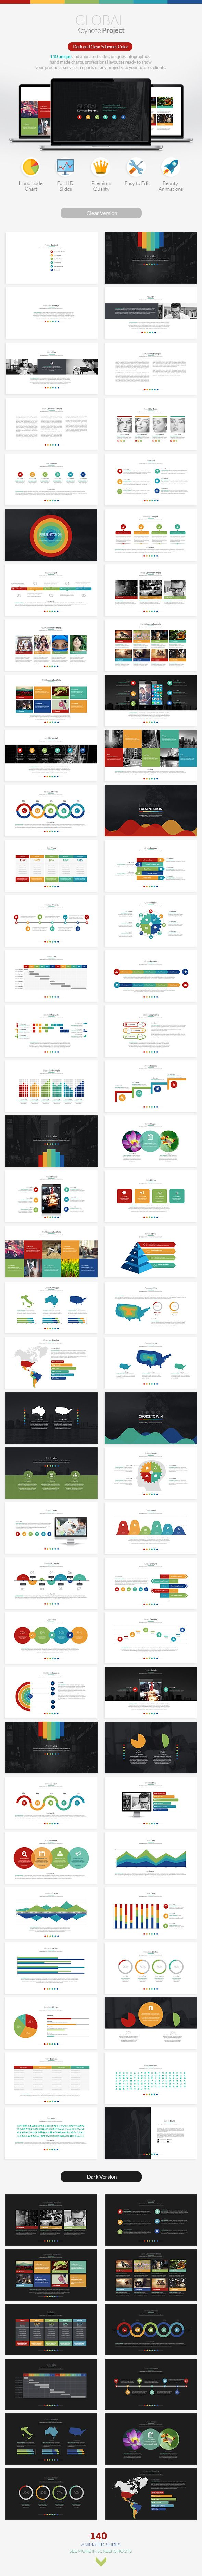 Global Project | Keynote Presentation - Business Keynote Templates